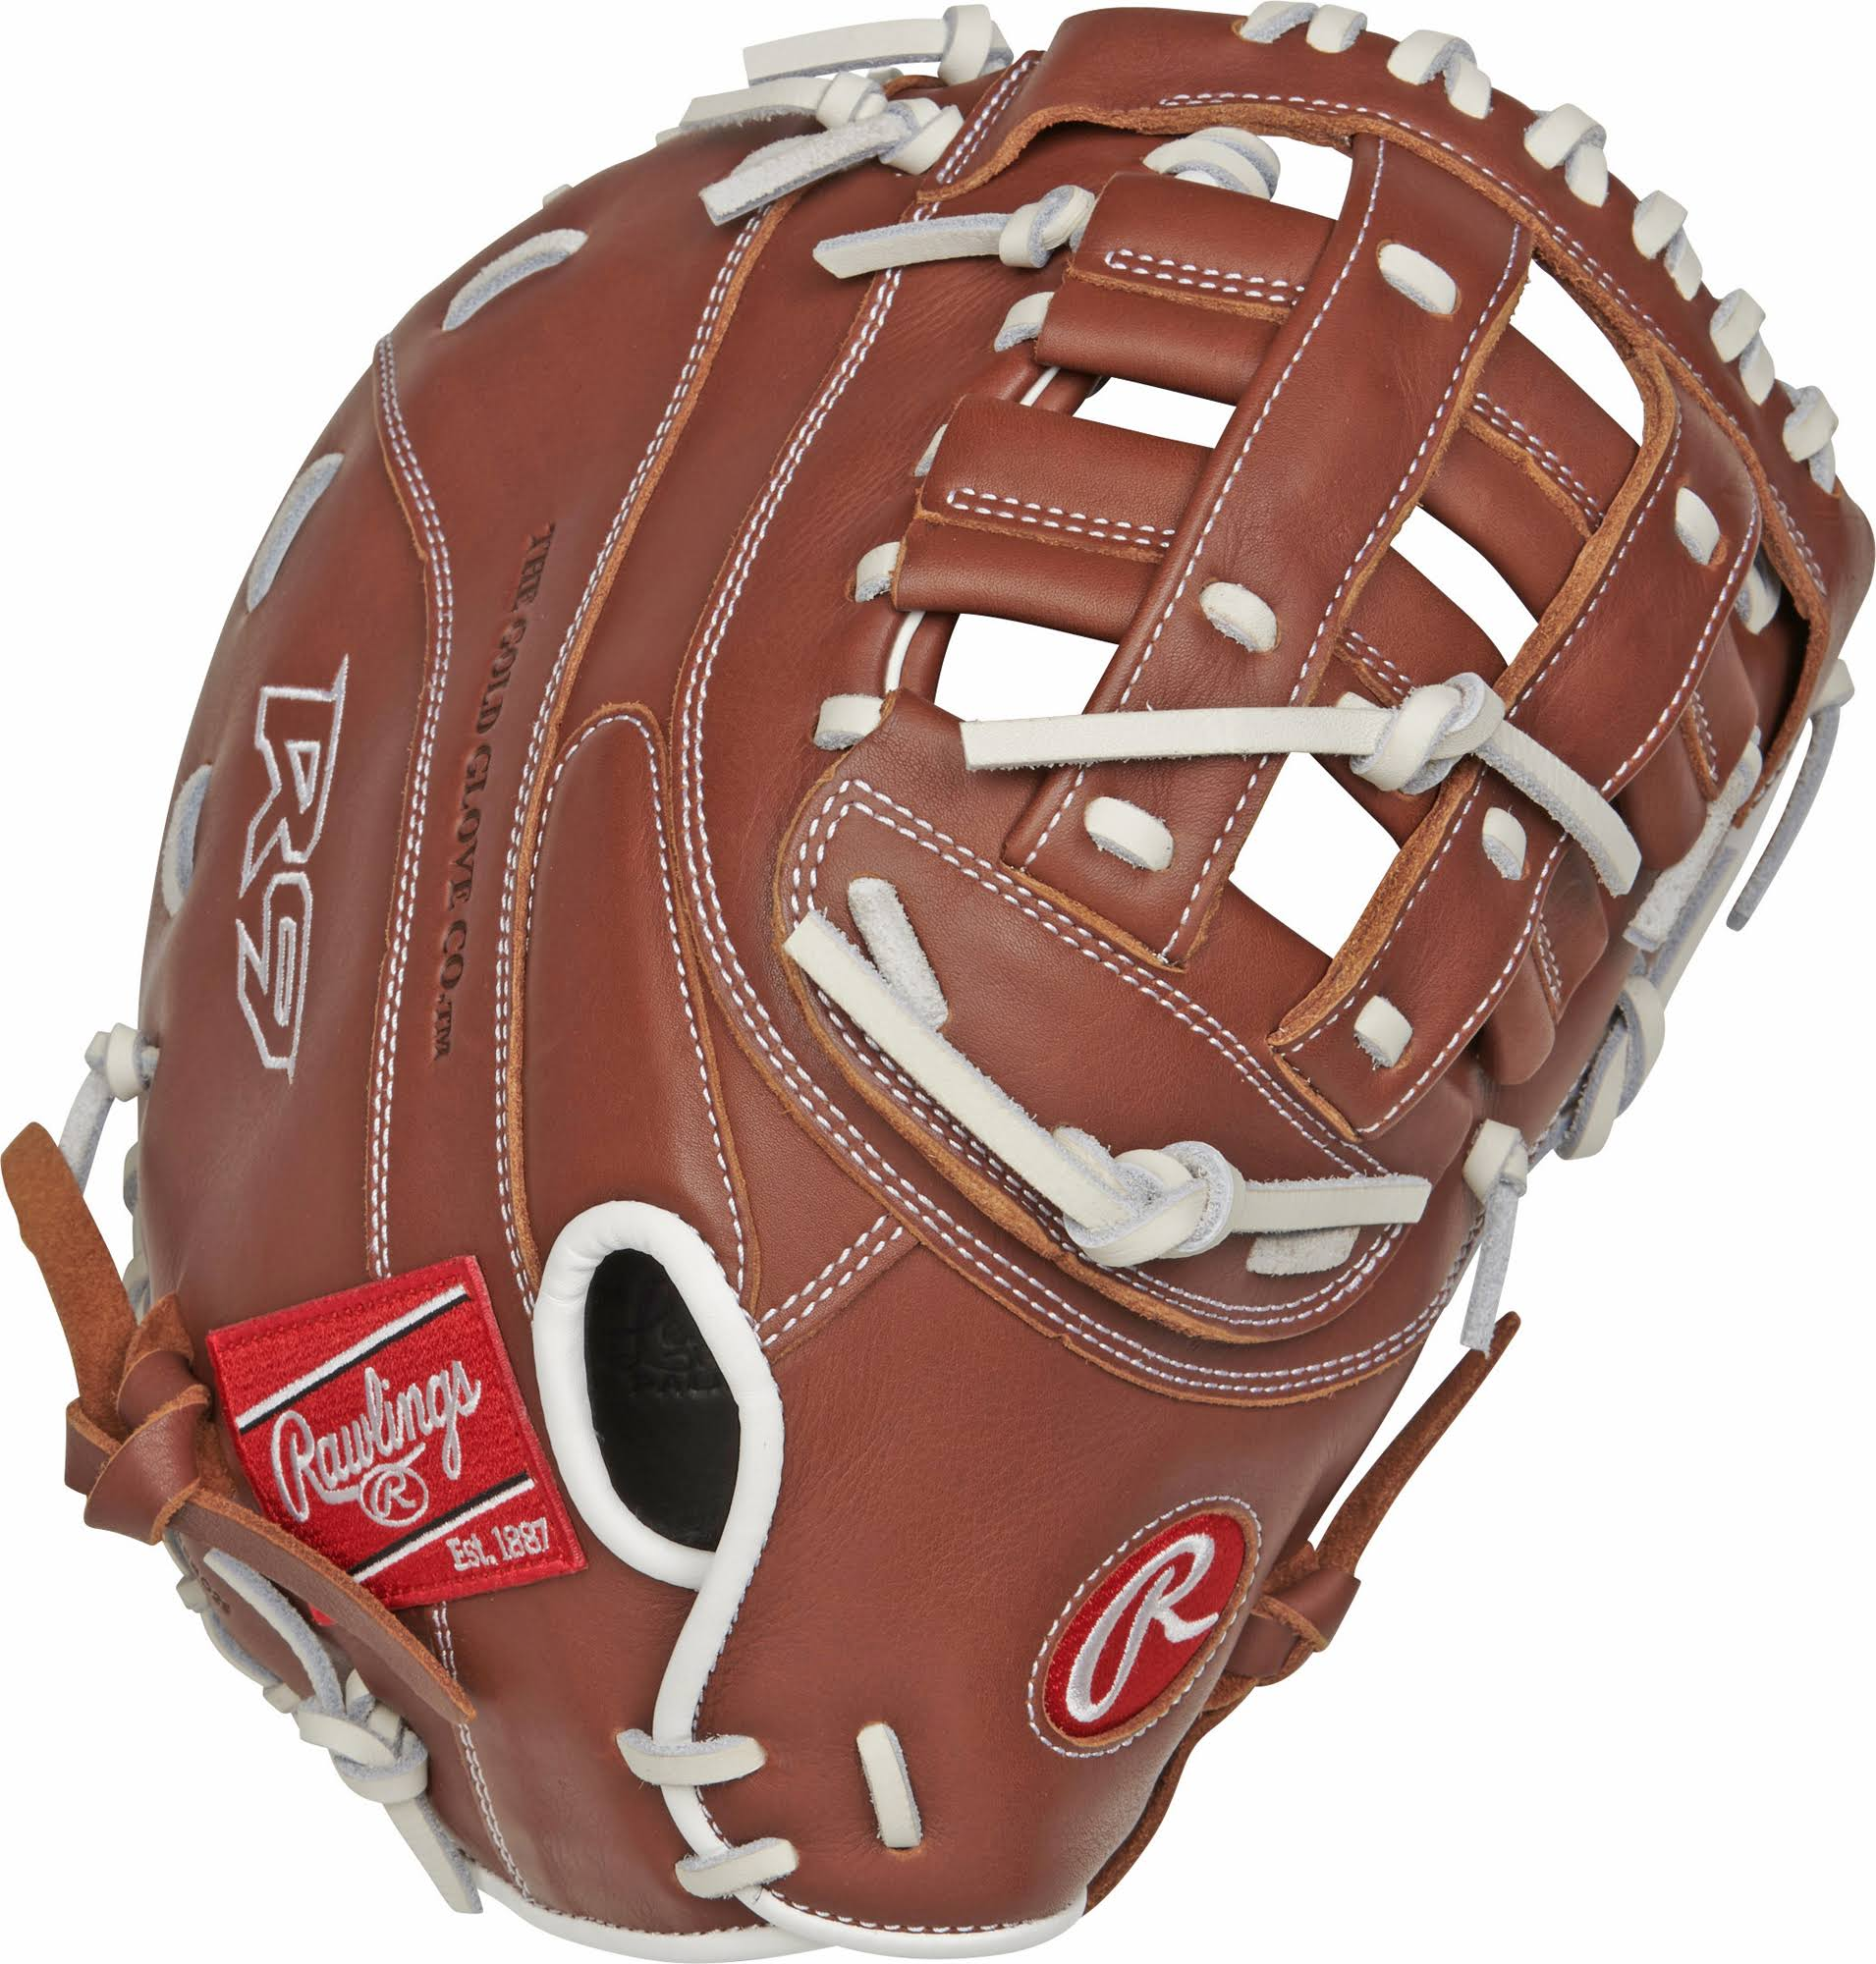 "Rawlings R9 Series Softball Mitt - 12.5"", Right Hand"